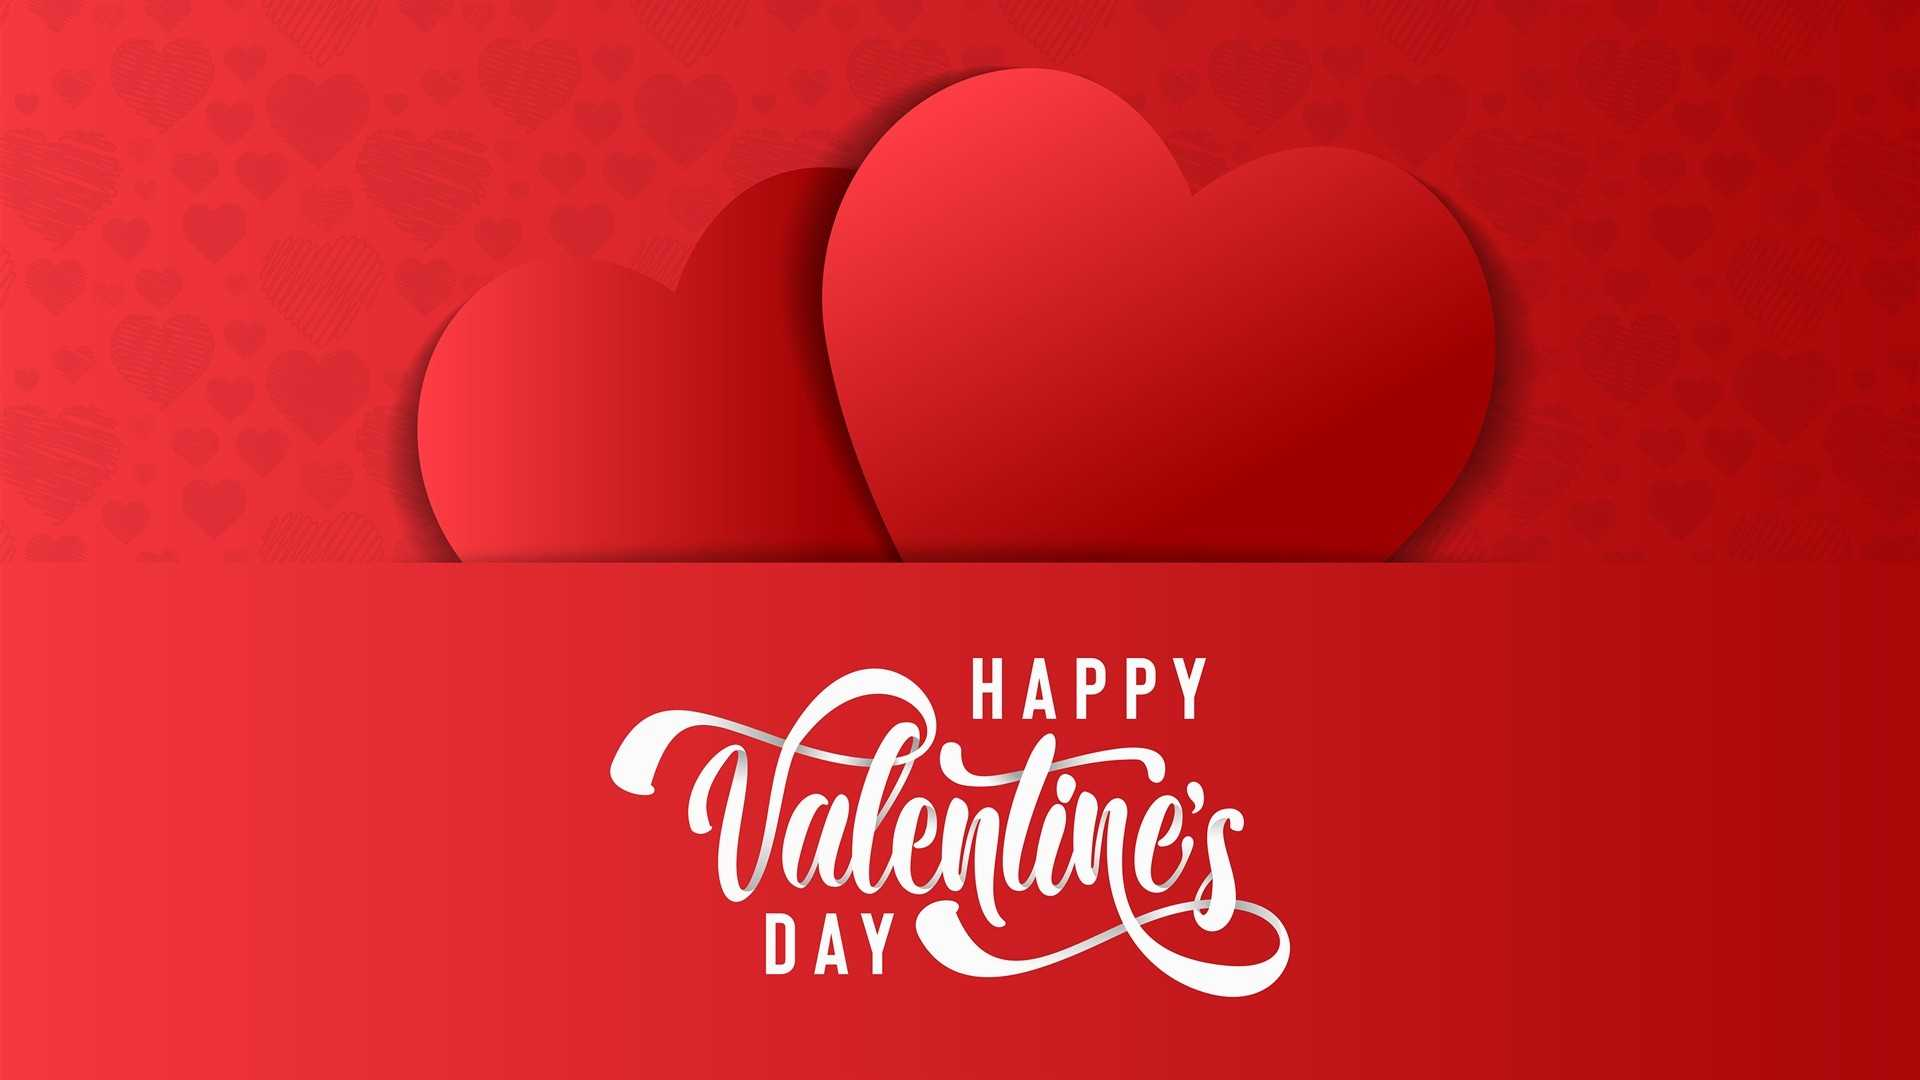 Happy Valentines Day Wallpaper 2